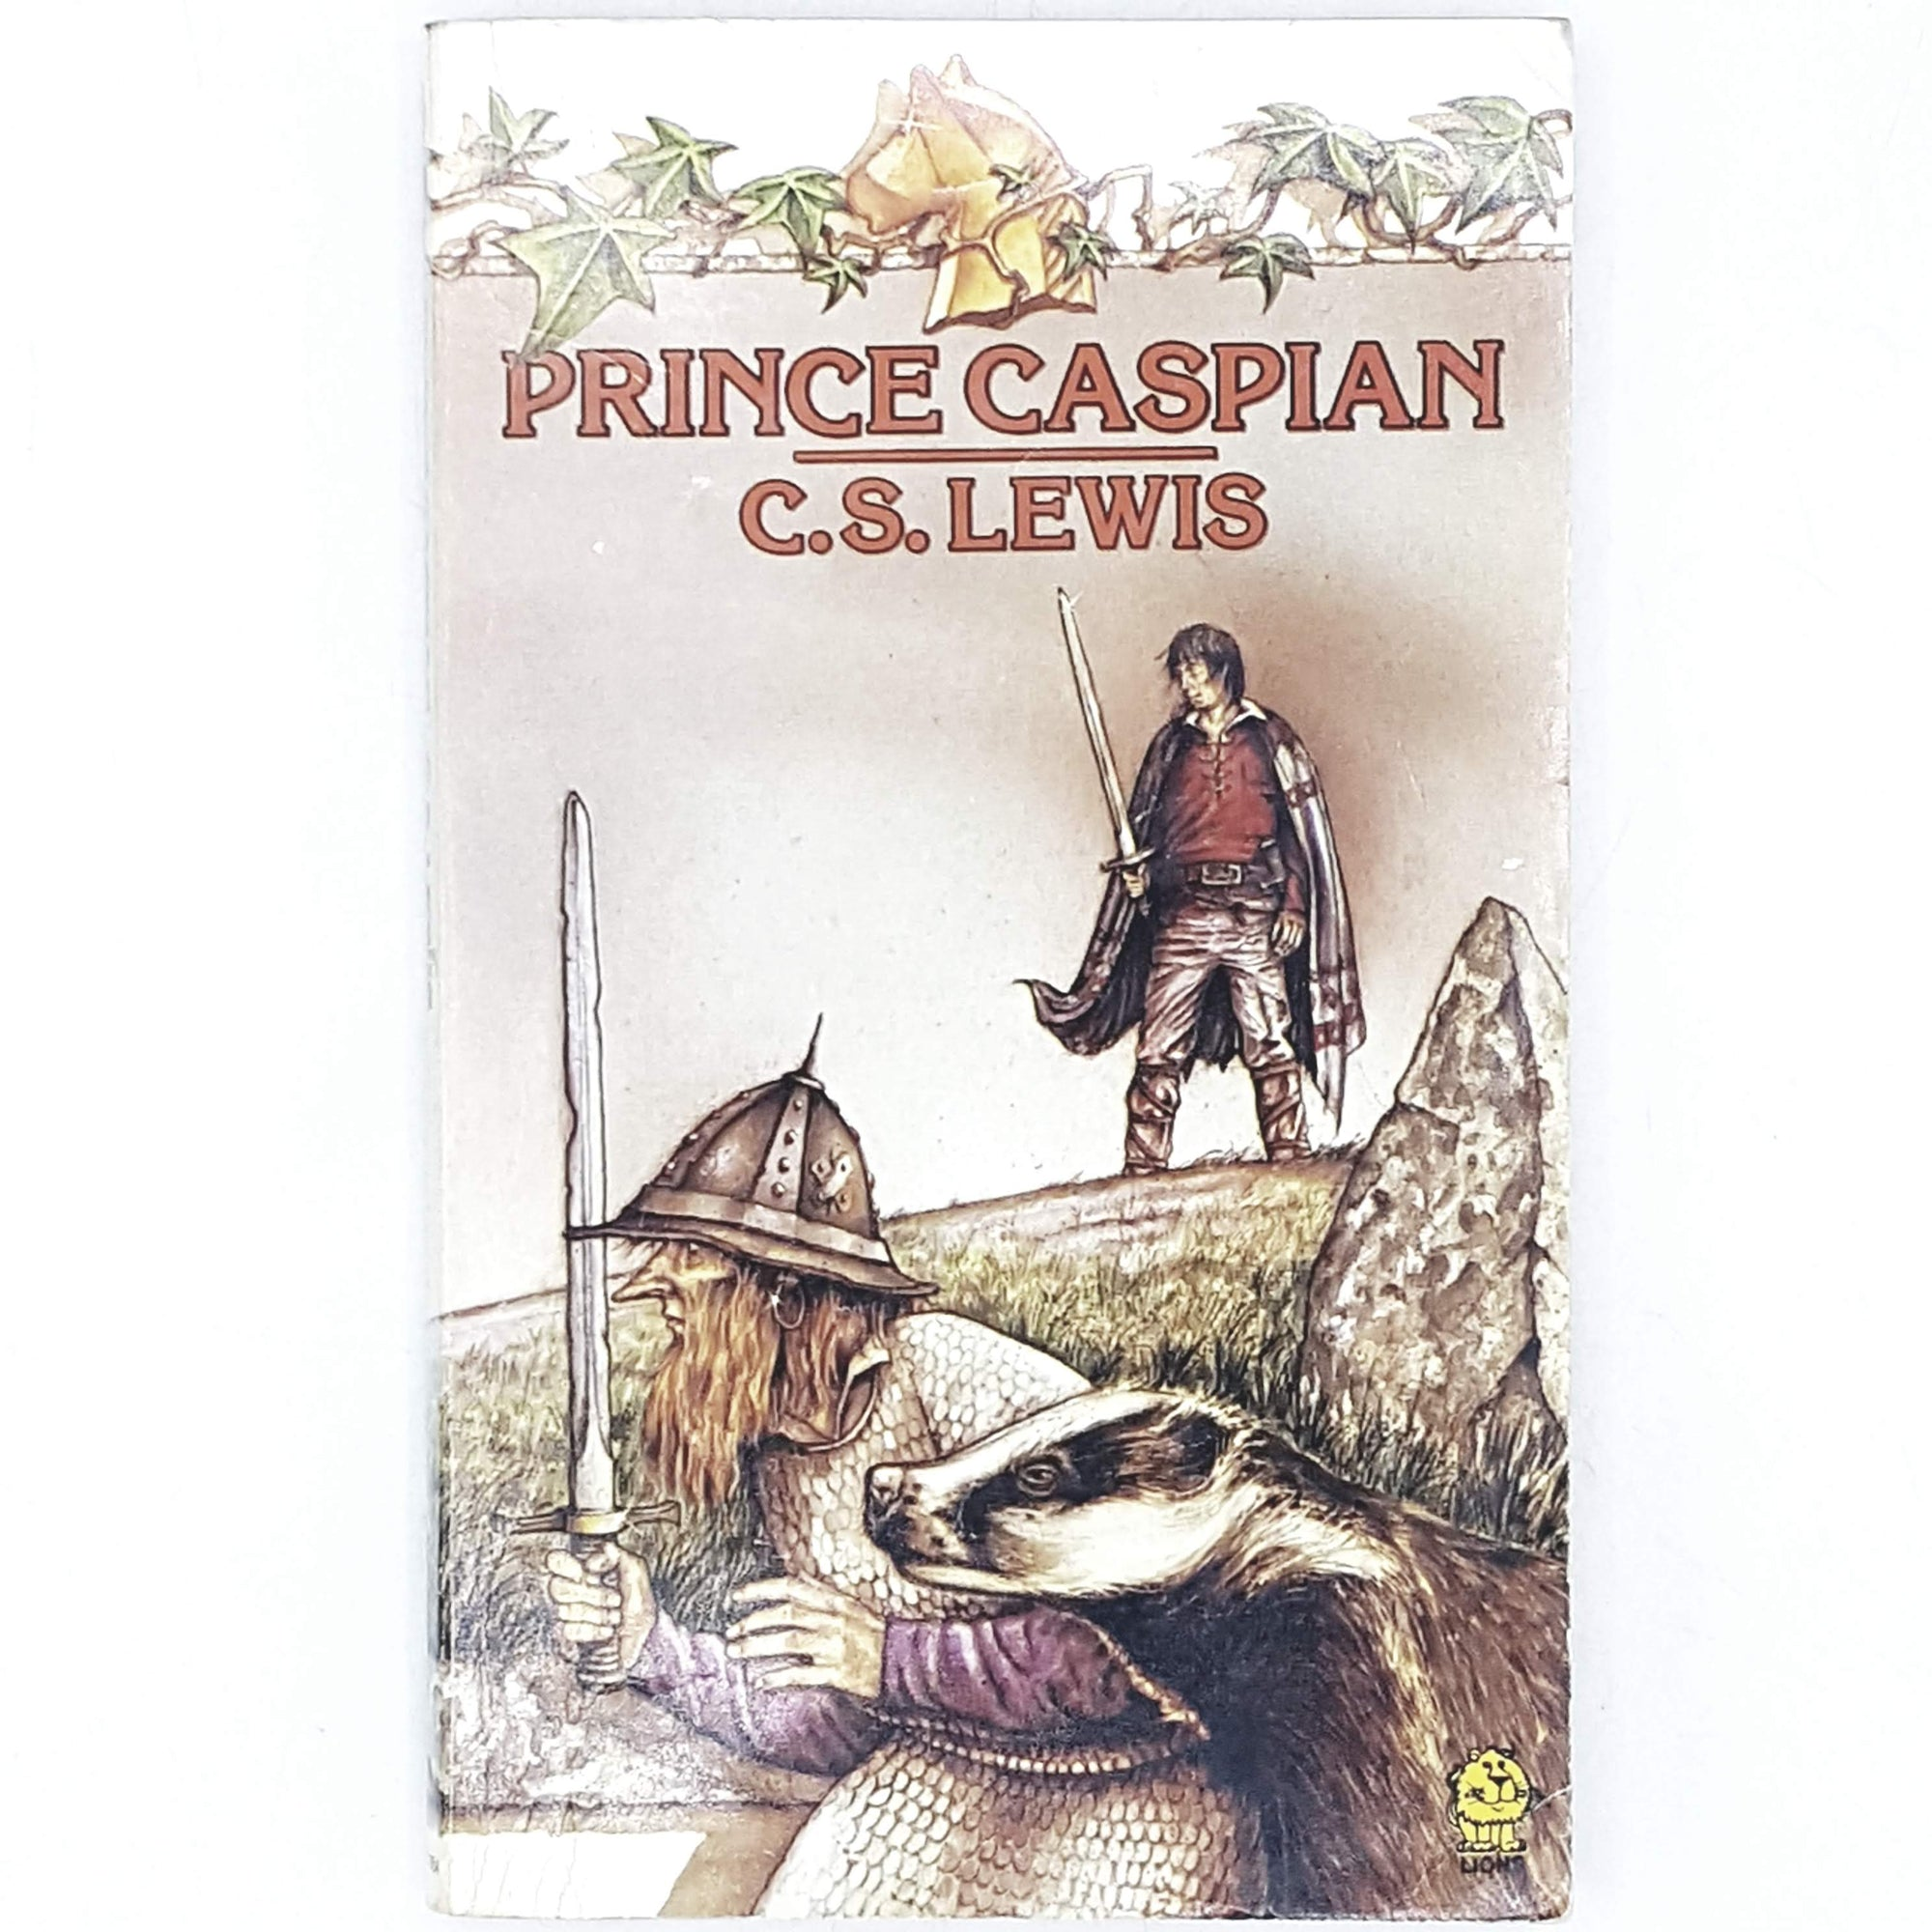 Illustrated C. S. Lewis's Prince Caspian 1981